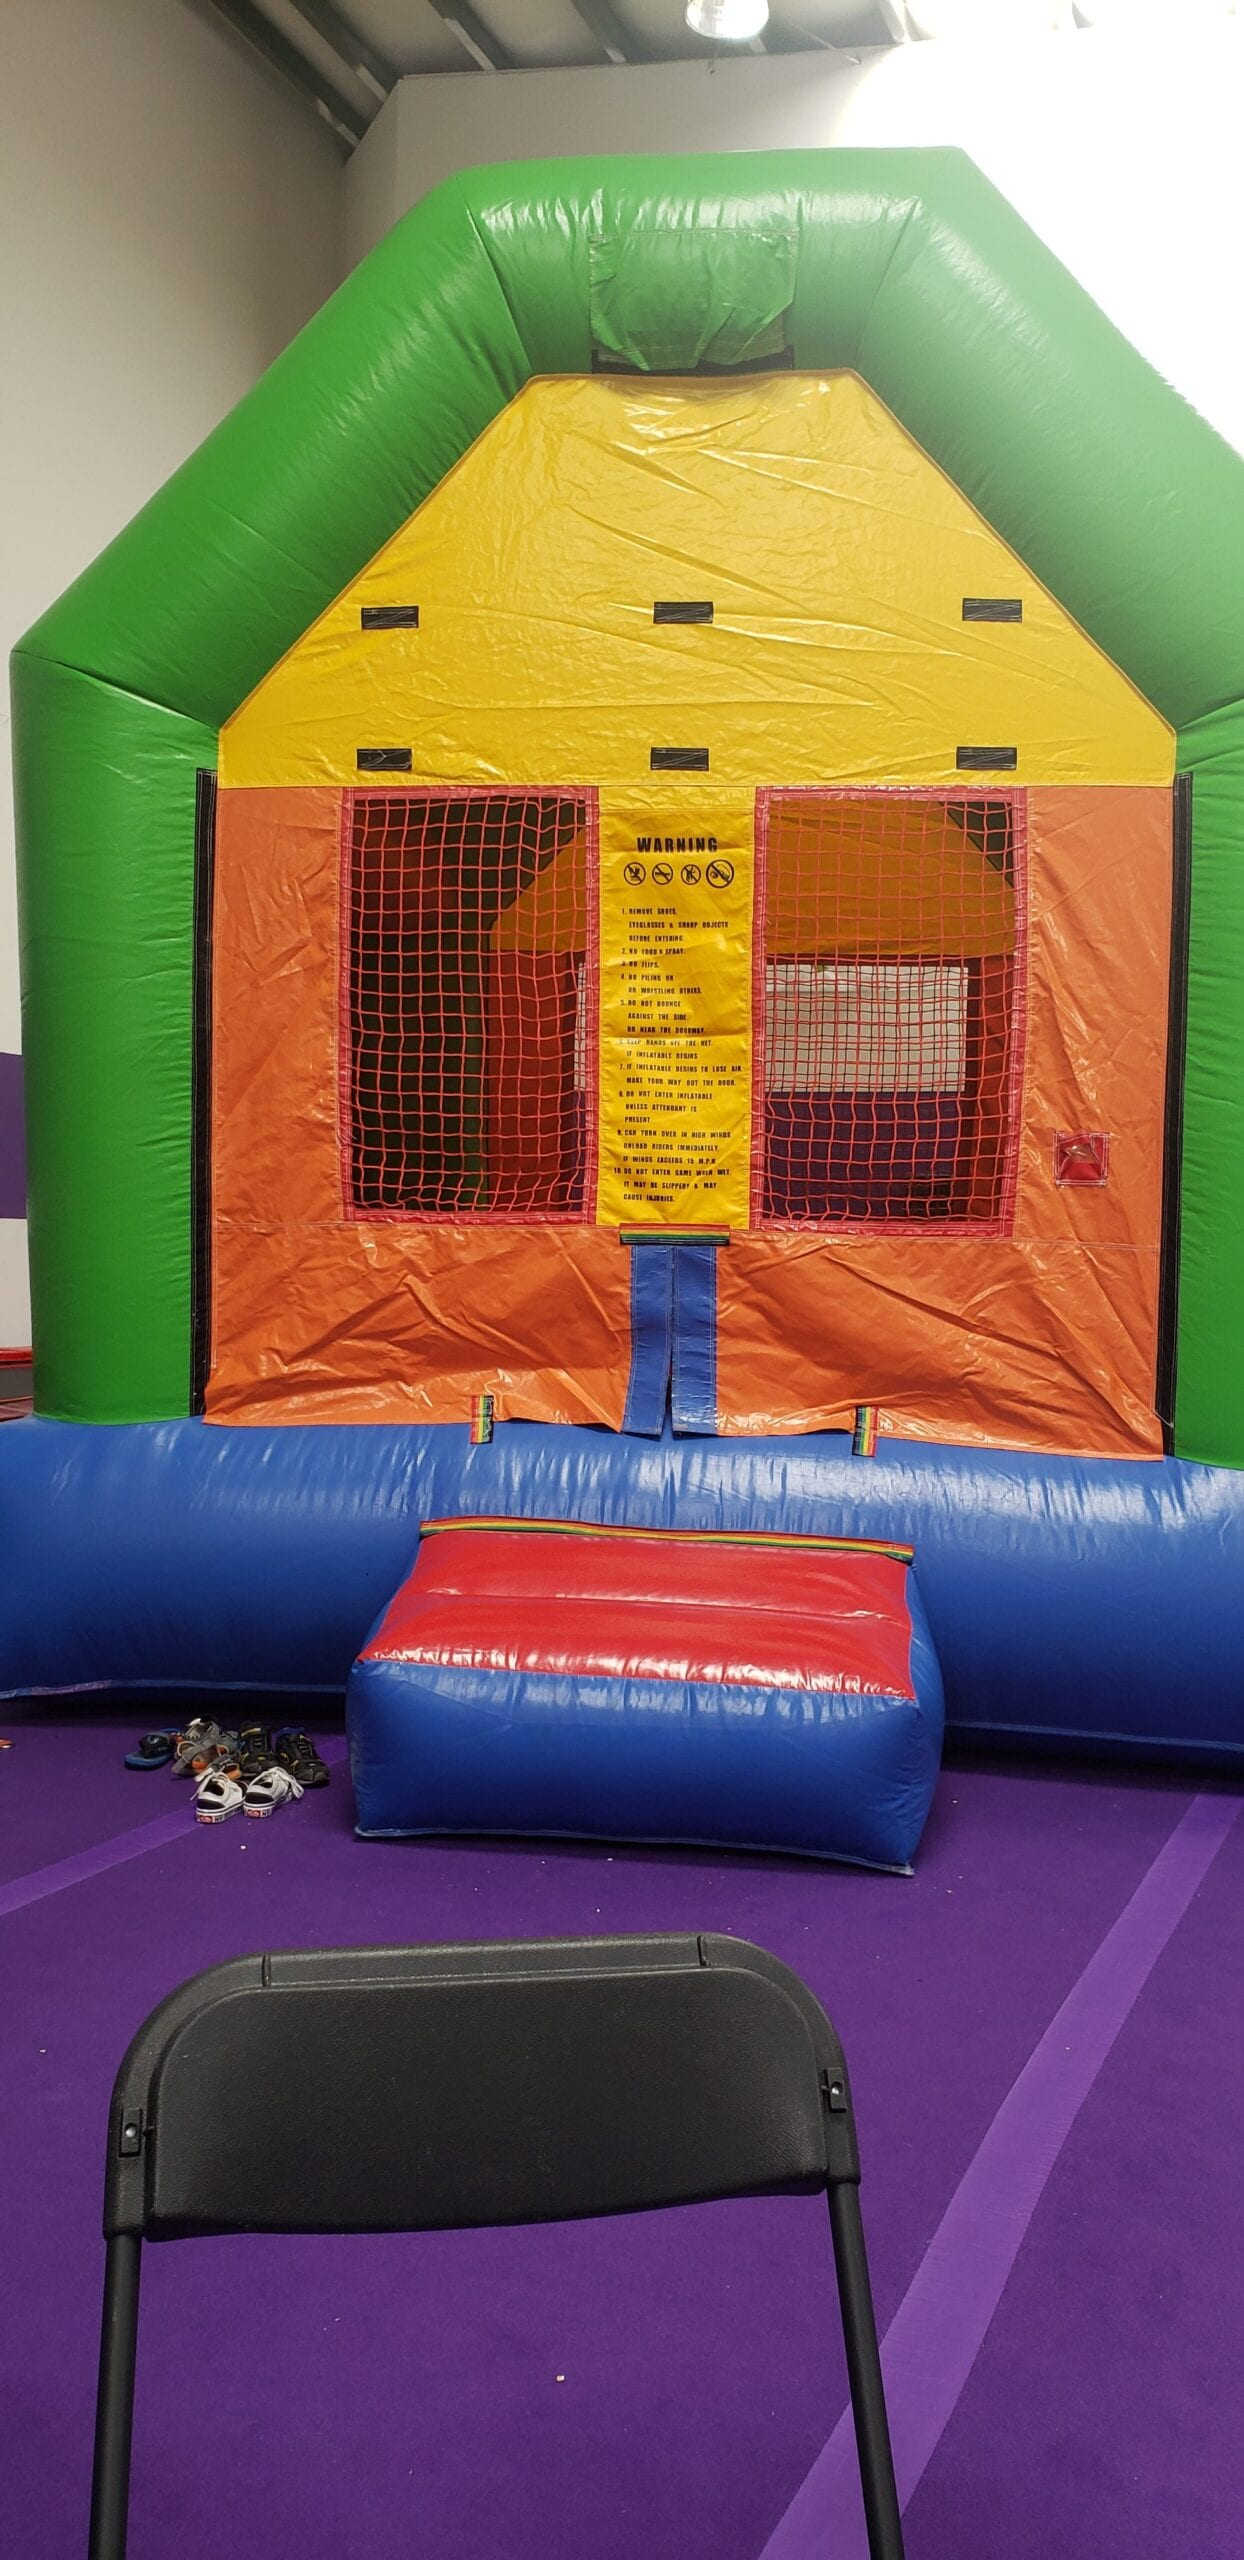 Bounce house ages 3+ $150 per event